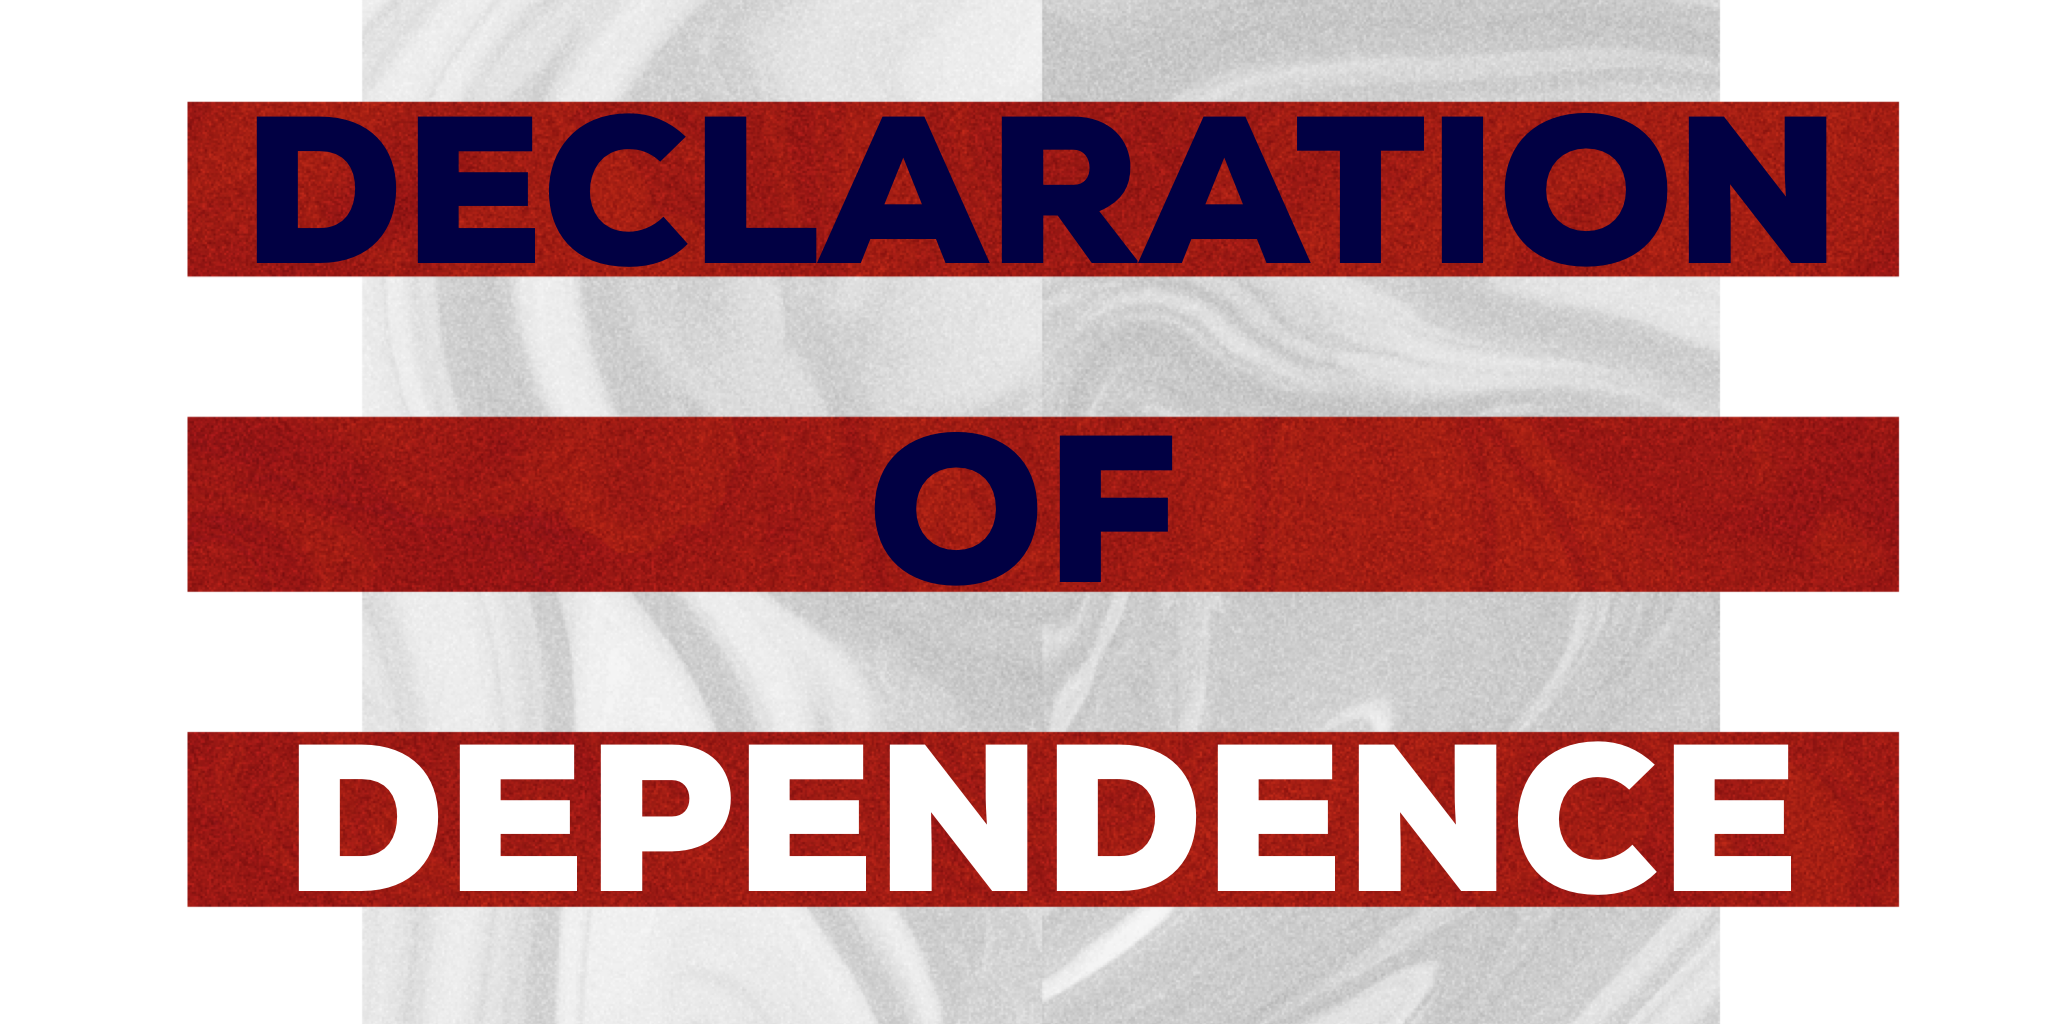 Declaration of Dependence Image